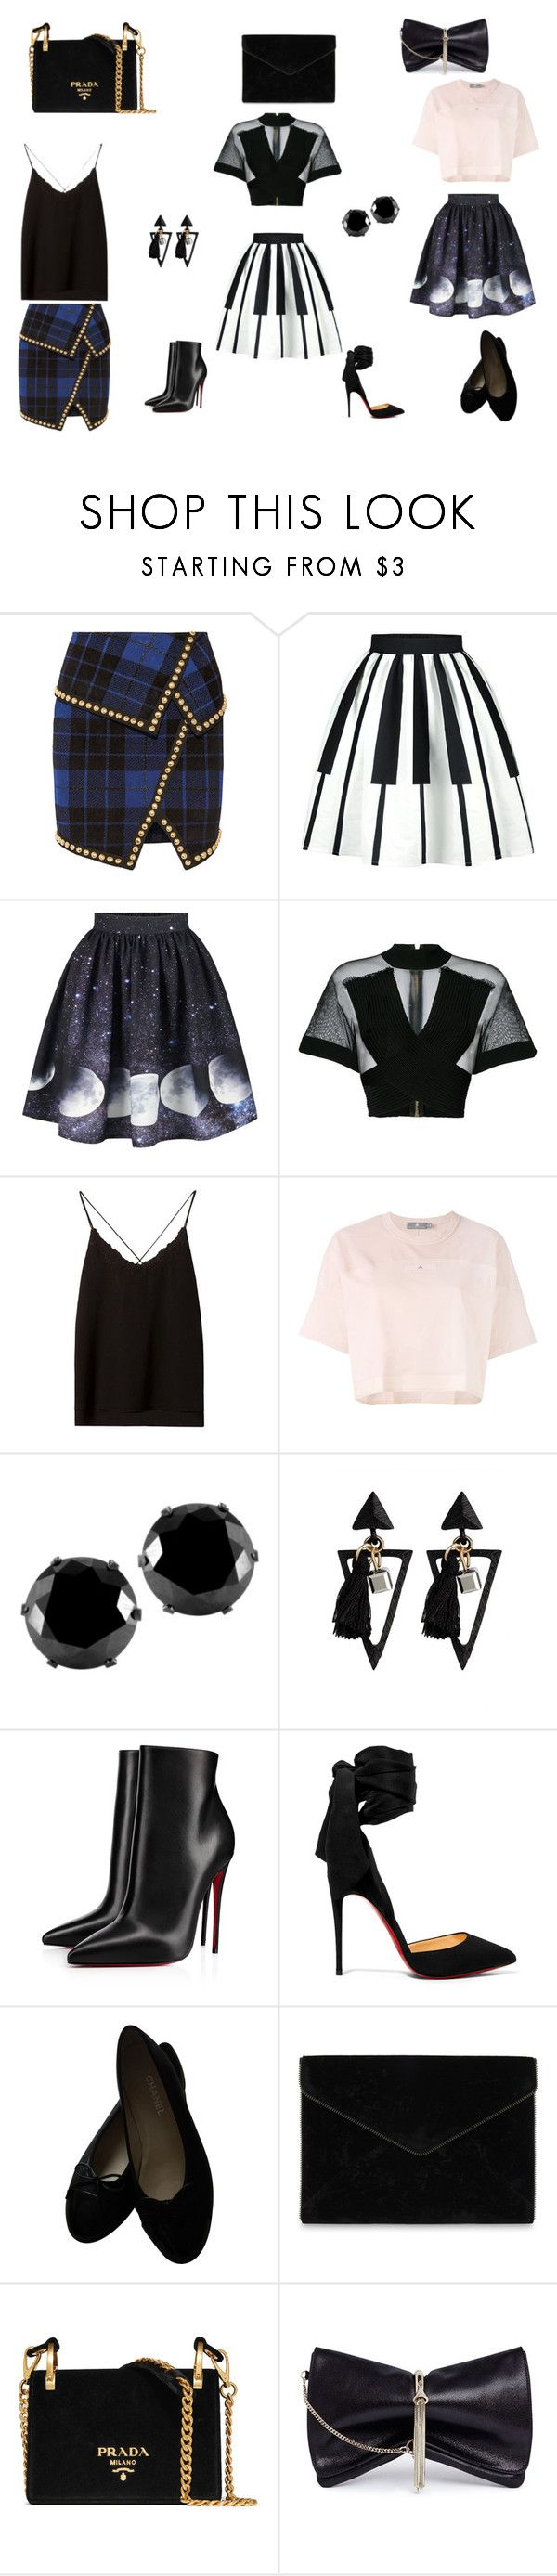 """""""to much to take"""" by skamex on Polyvore featuring Balmain, Massimo Dutti, adidas, West Coast Jewelry, Christian Louboutin, Chanel, Rebecca Minkoff, Prada and Jimmy Choo"""